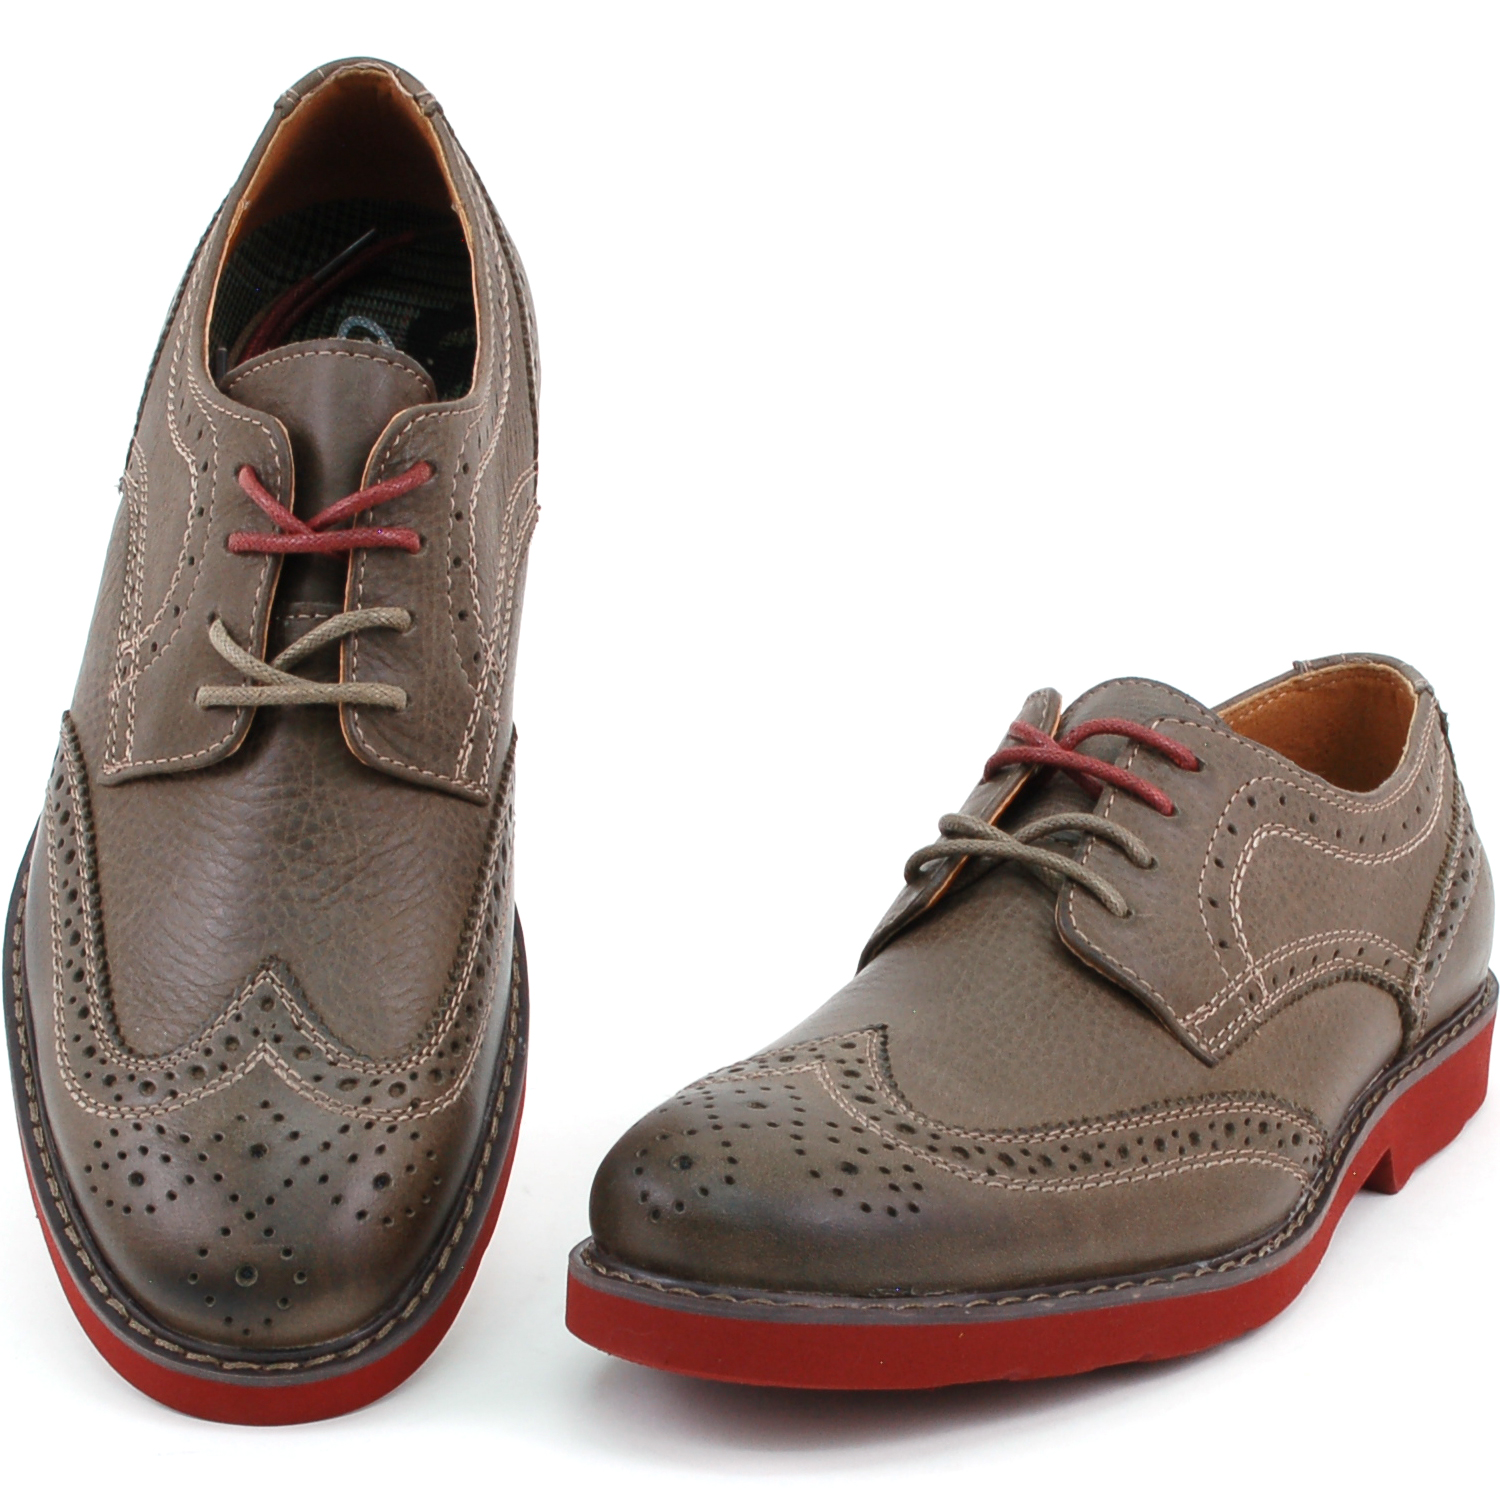 Mens Wingtip Oxfords Real Leather Casual   Dress Fashionable Trendy Look by  GBX 6b0a7c418690